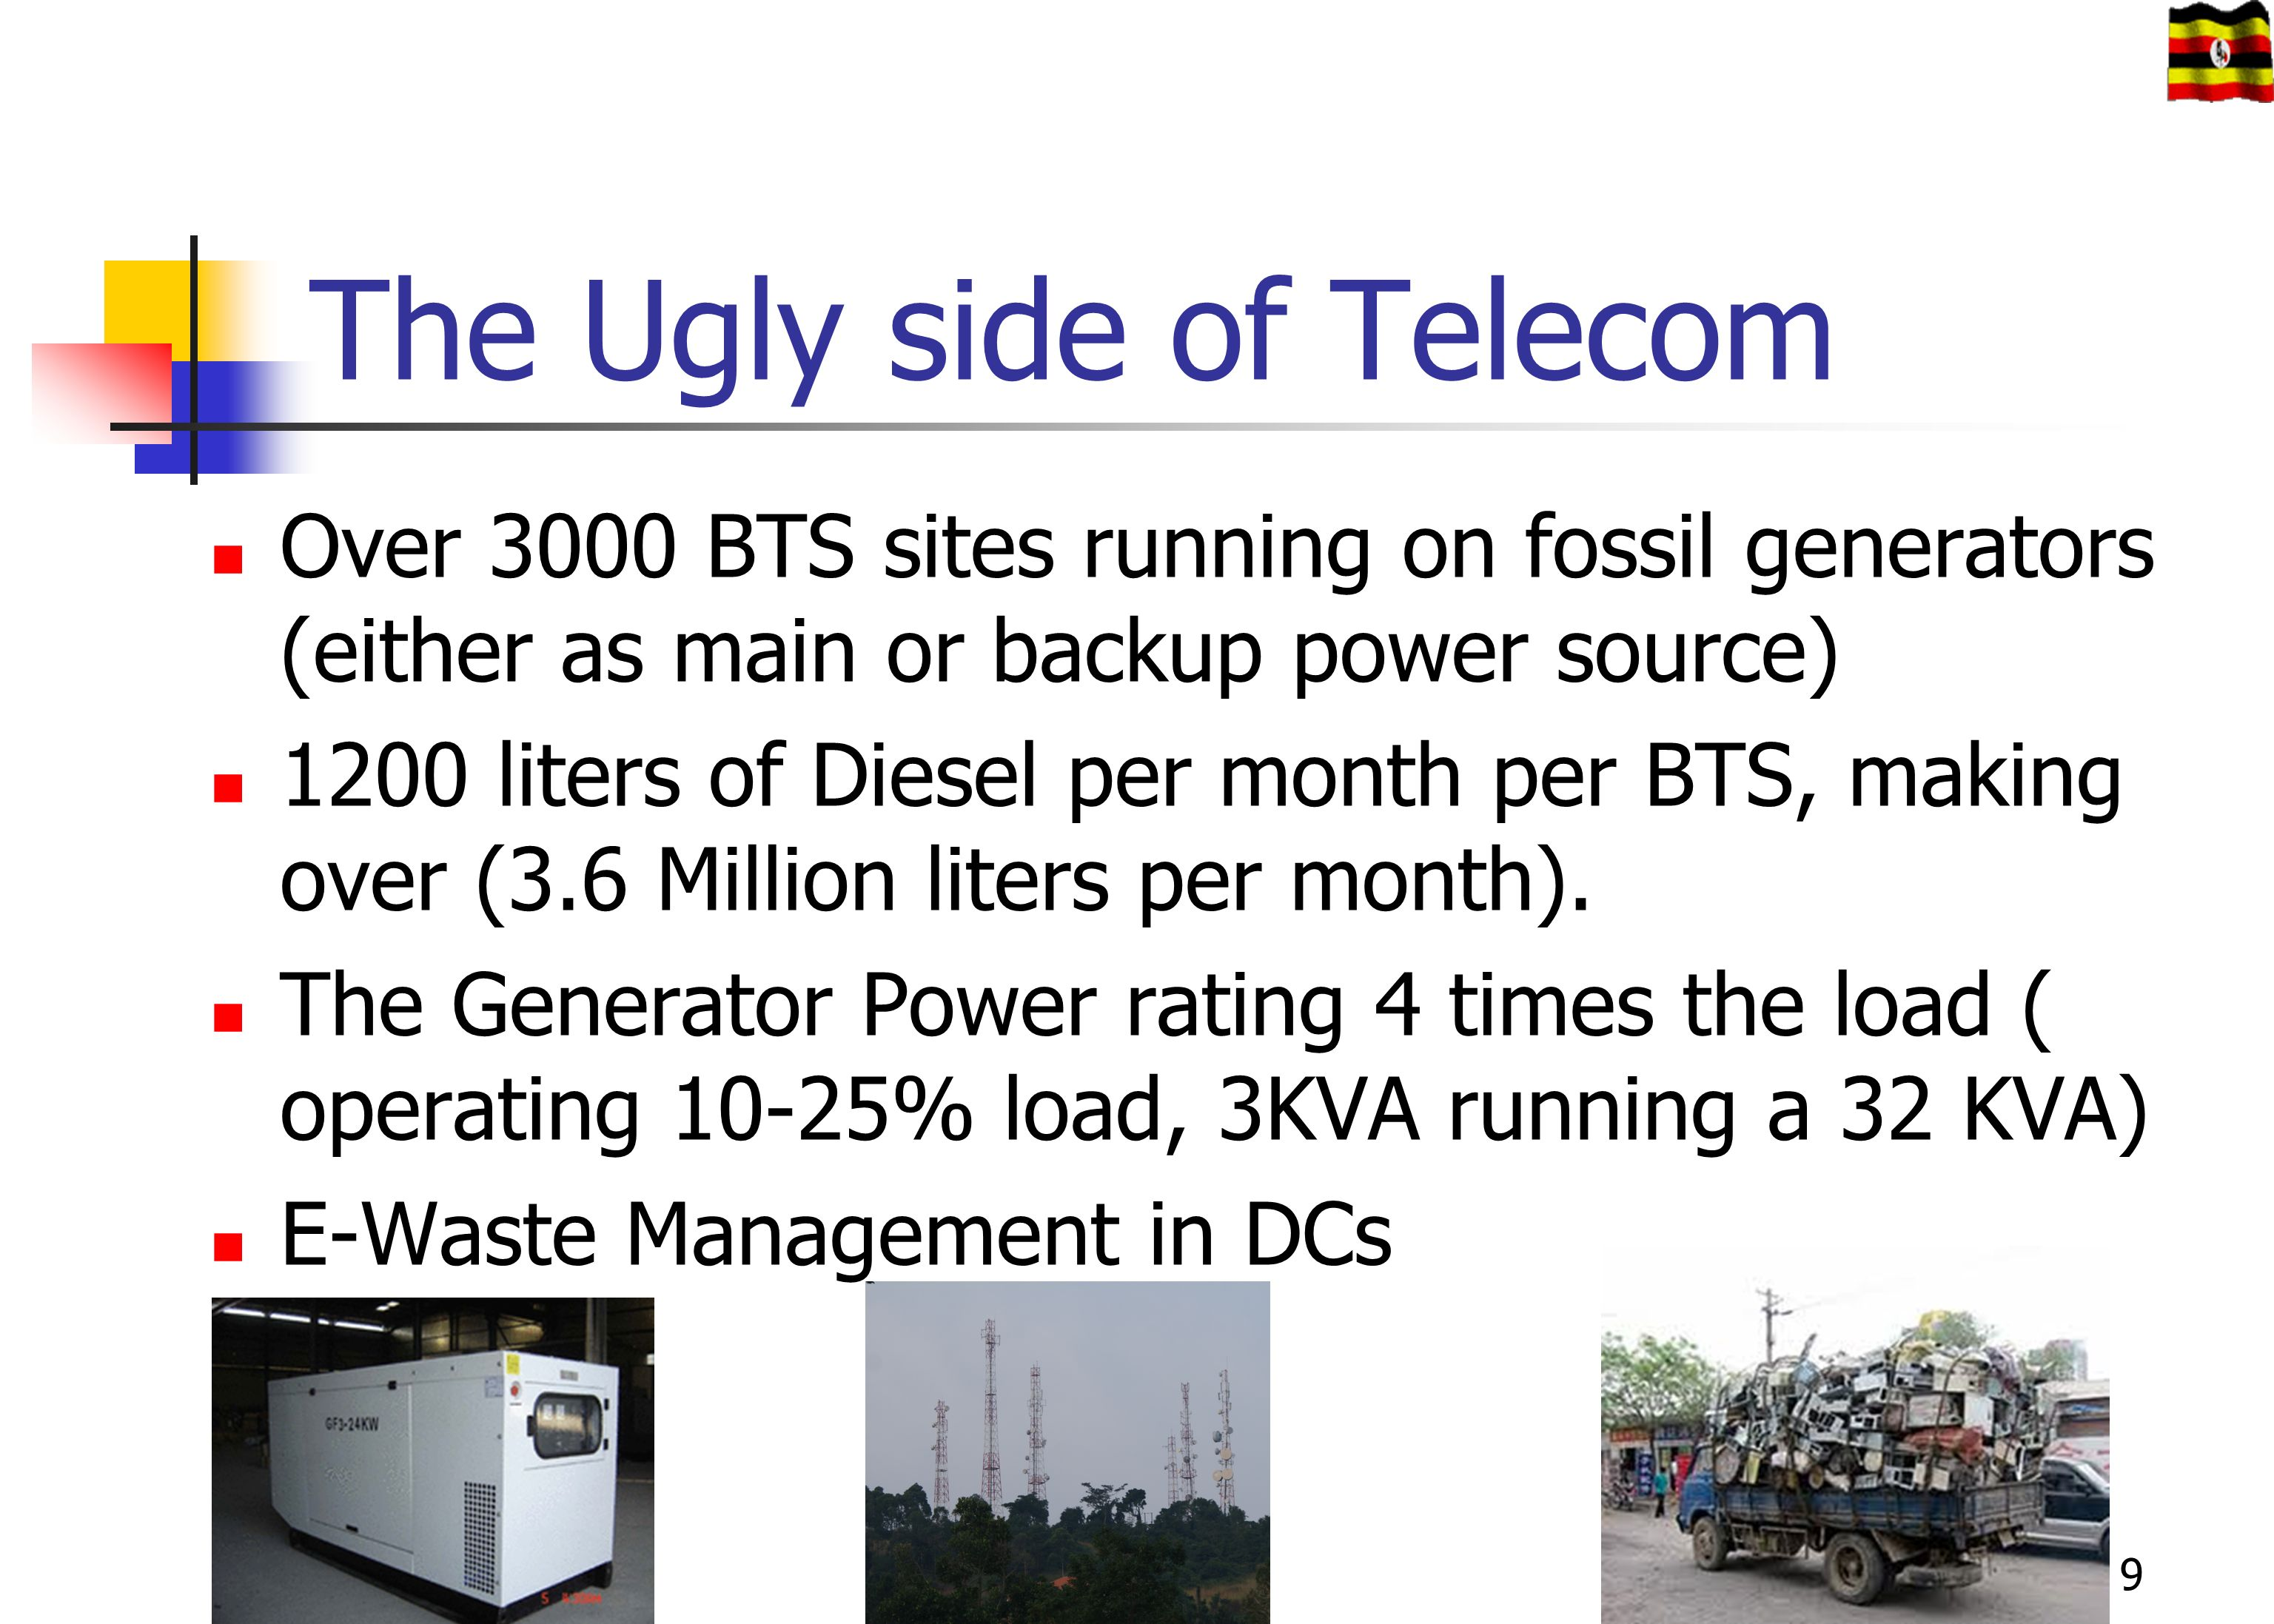 The Ugly side of Telecom Over 3000 BTS sites running on fossil generators (either as main or backup power source) 1200 liters of Diesel per month per